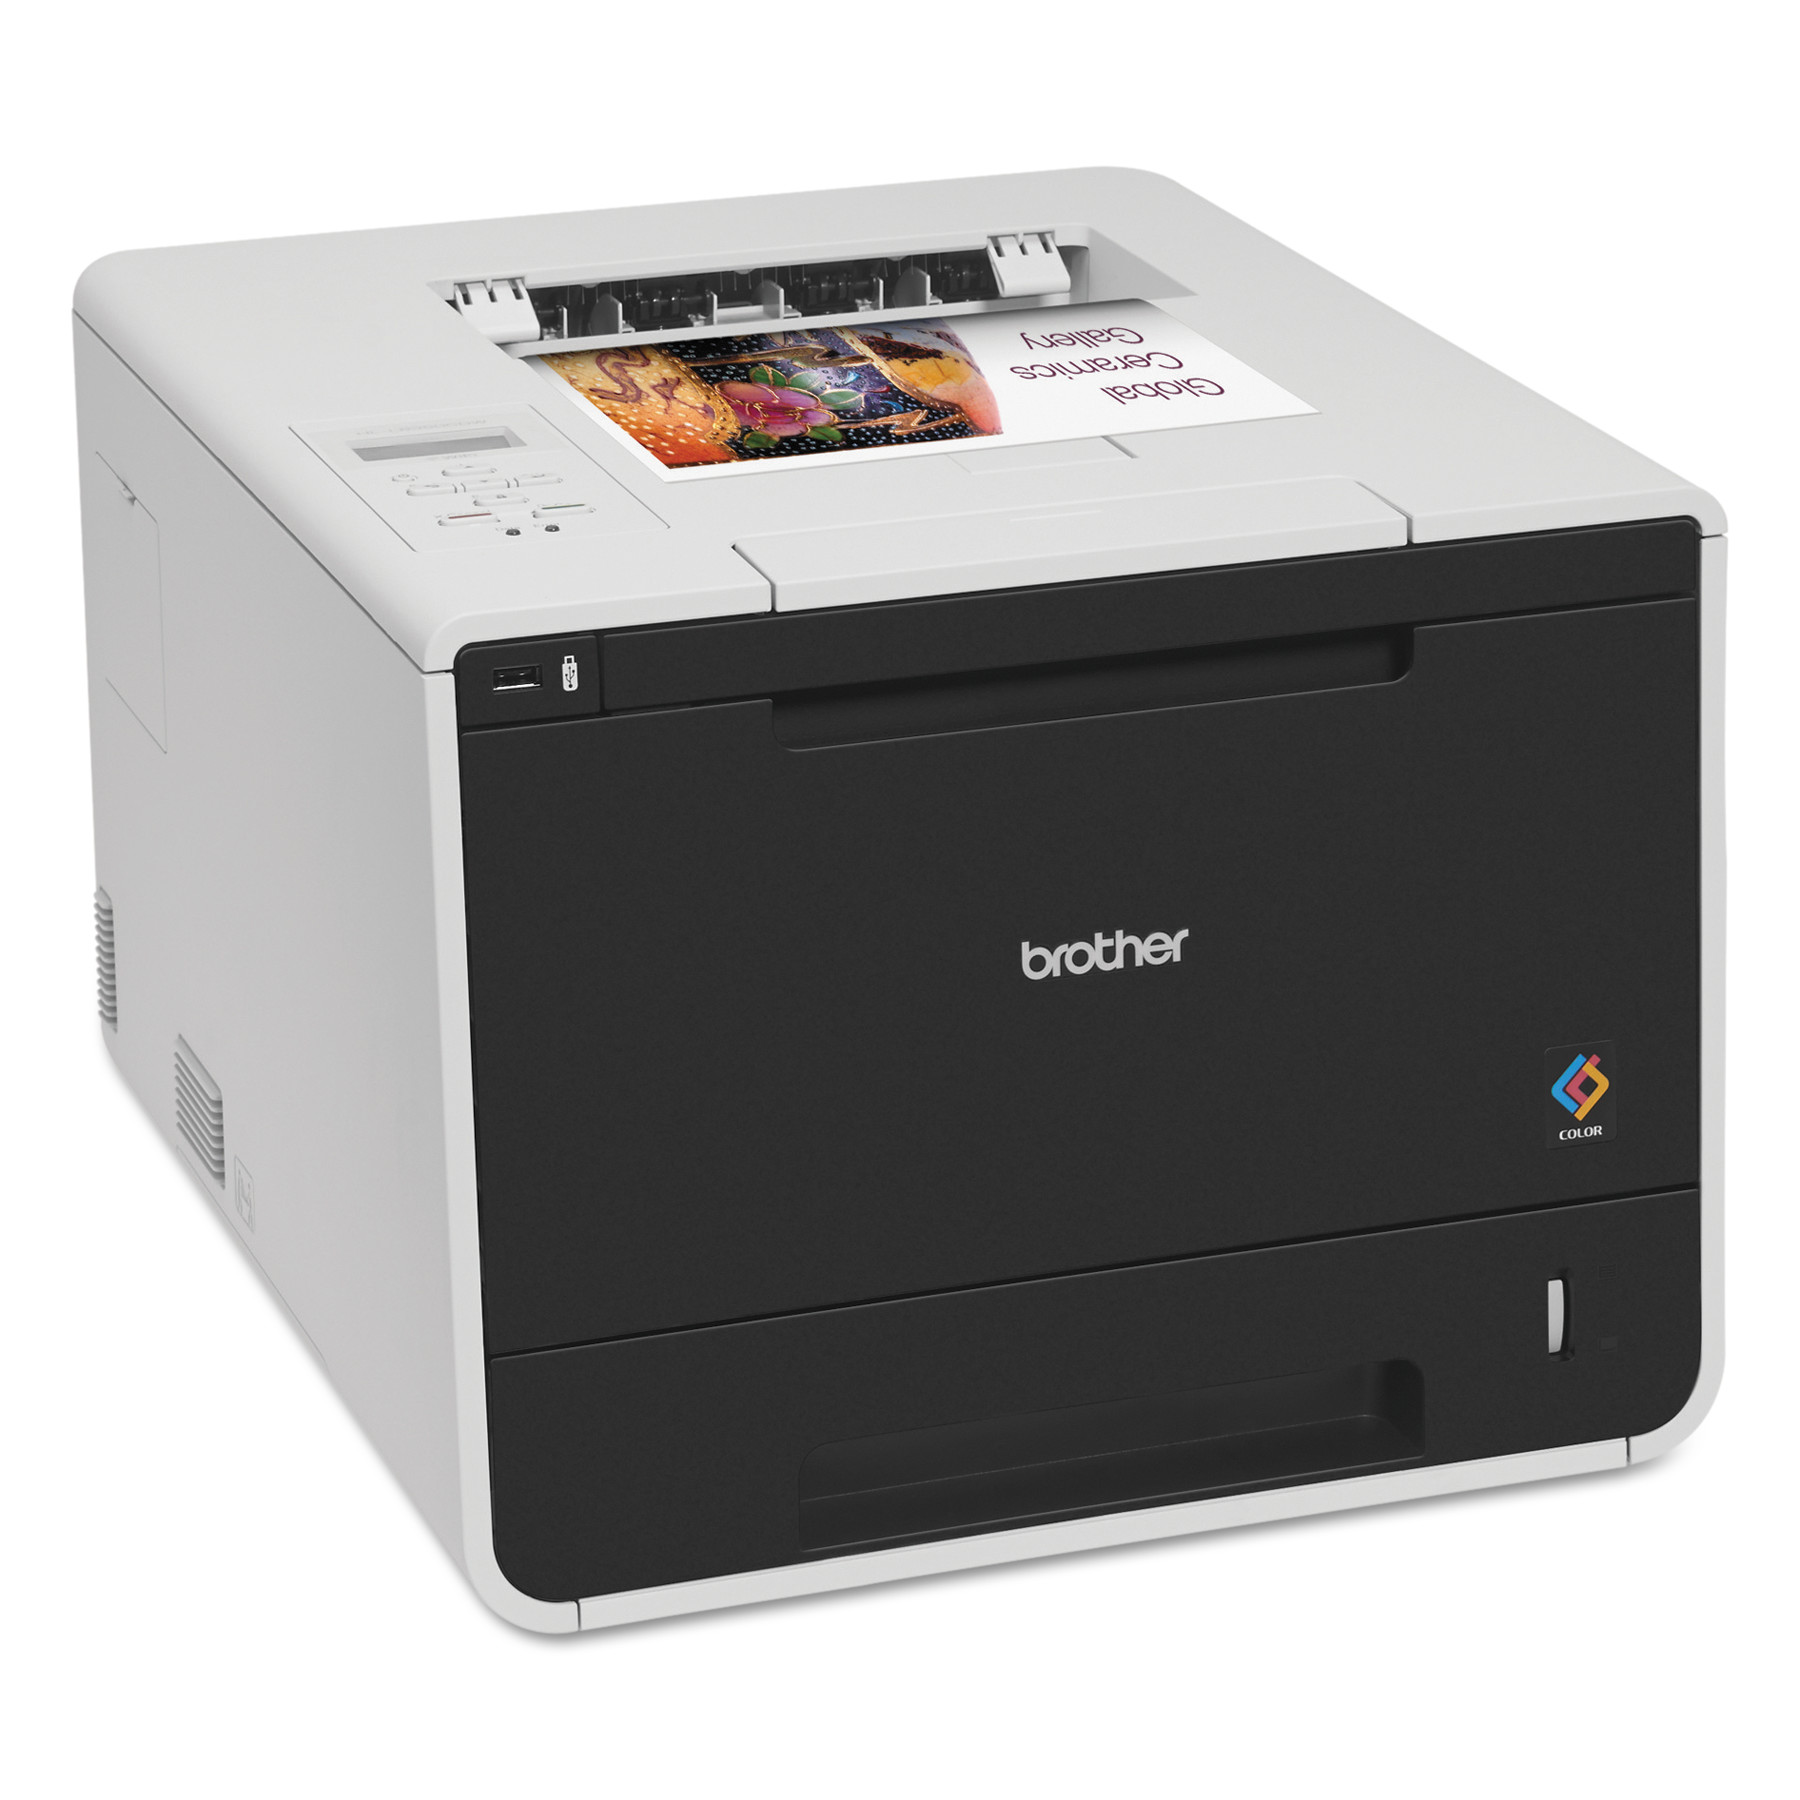 Brother HL-L8350CDW Color Laser Printer with Wireless Networking and Duplex by Brother